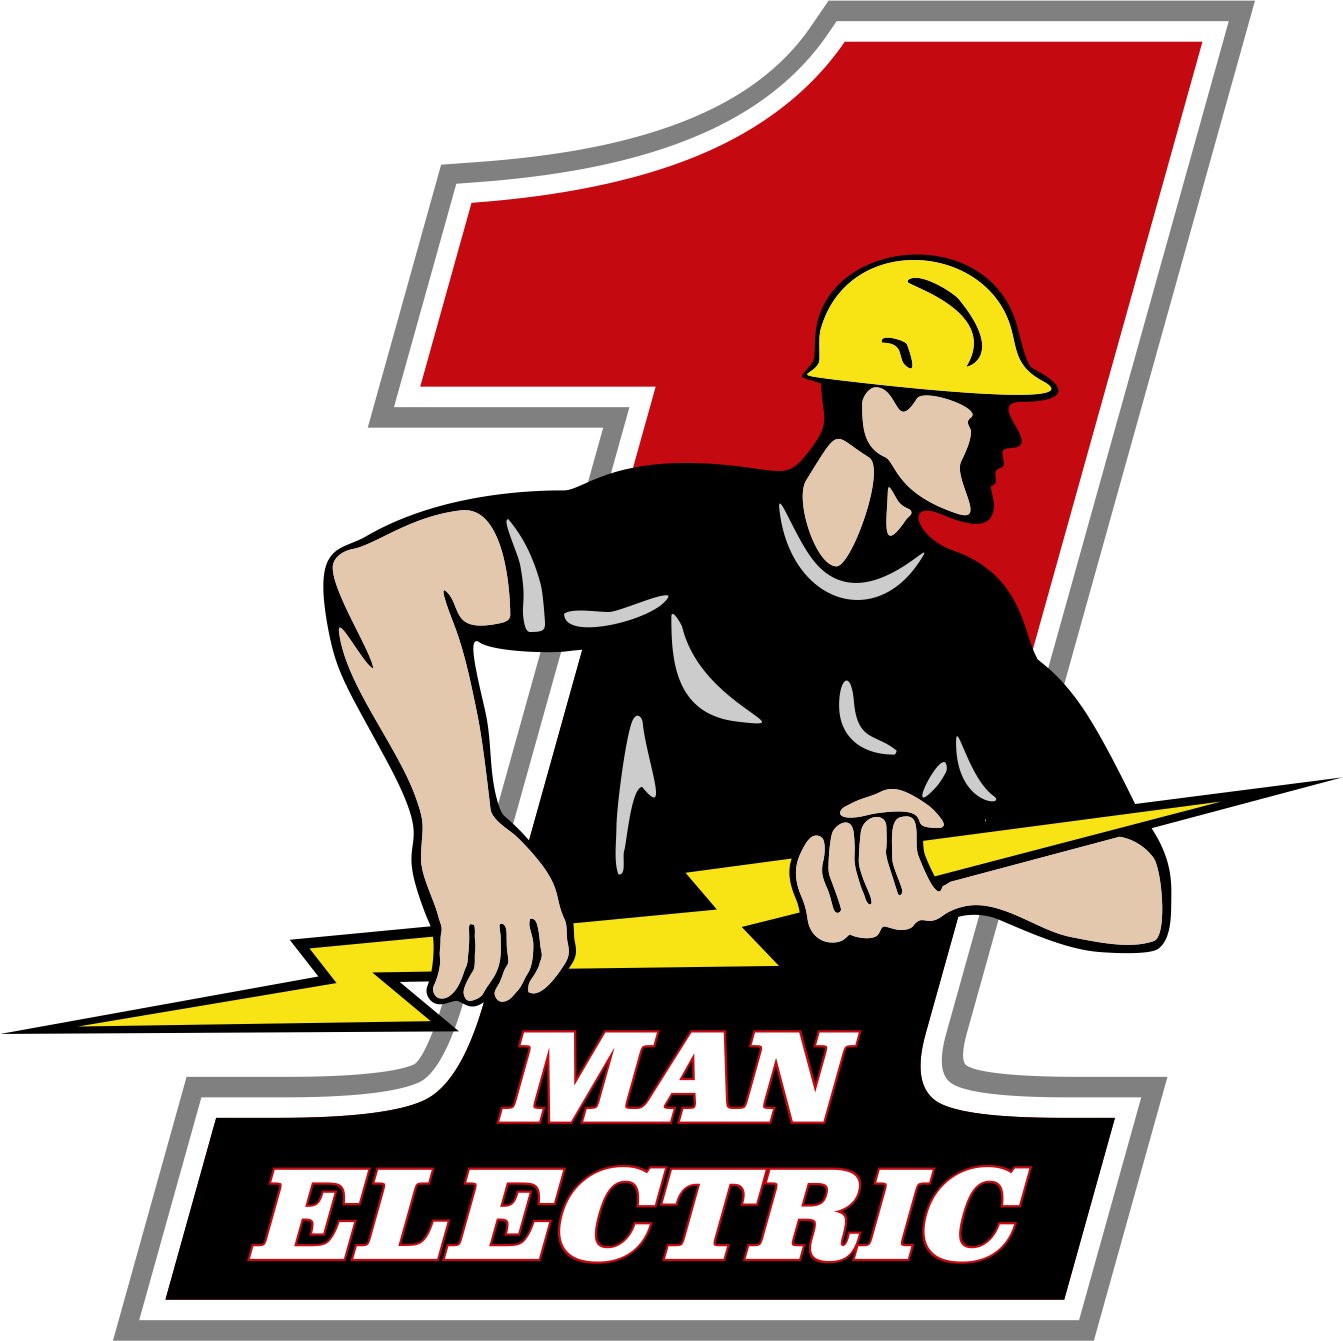 man electric get. Electrician clipart female